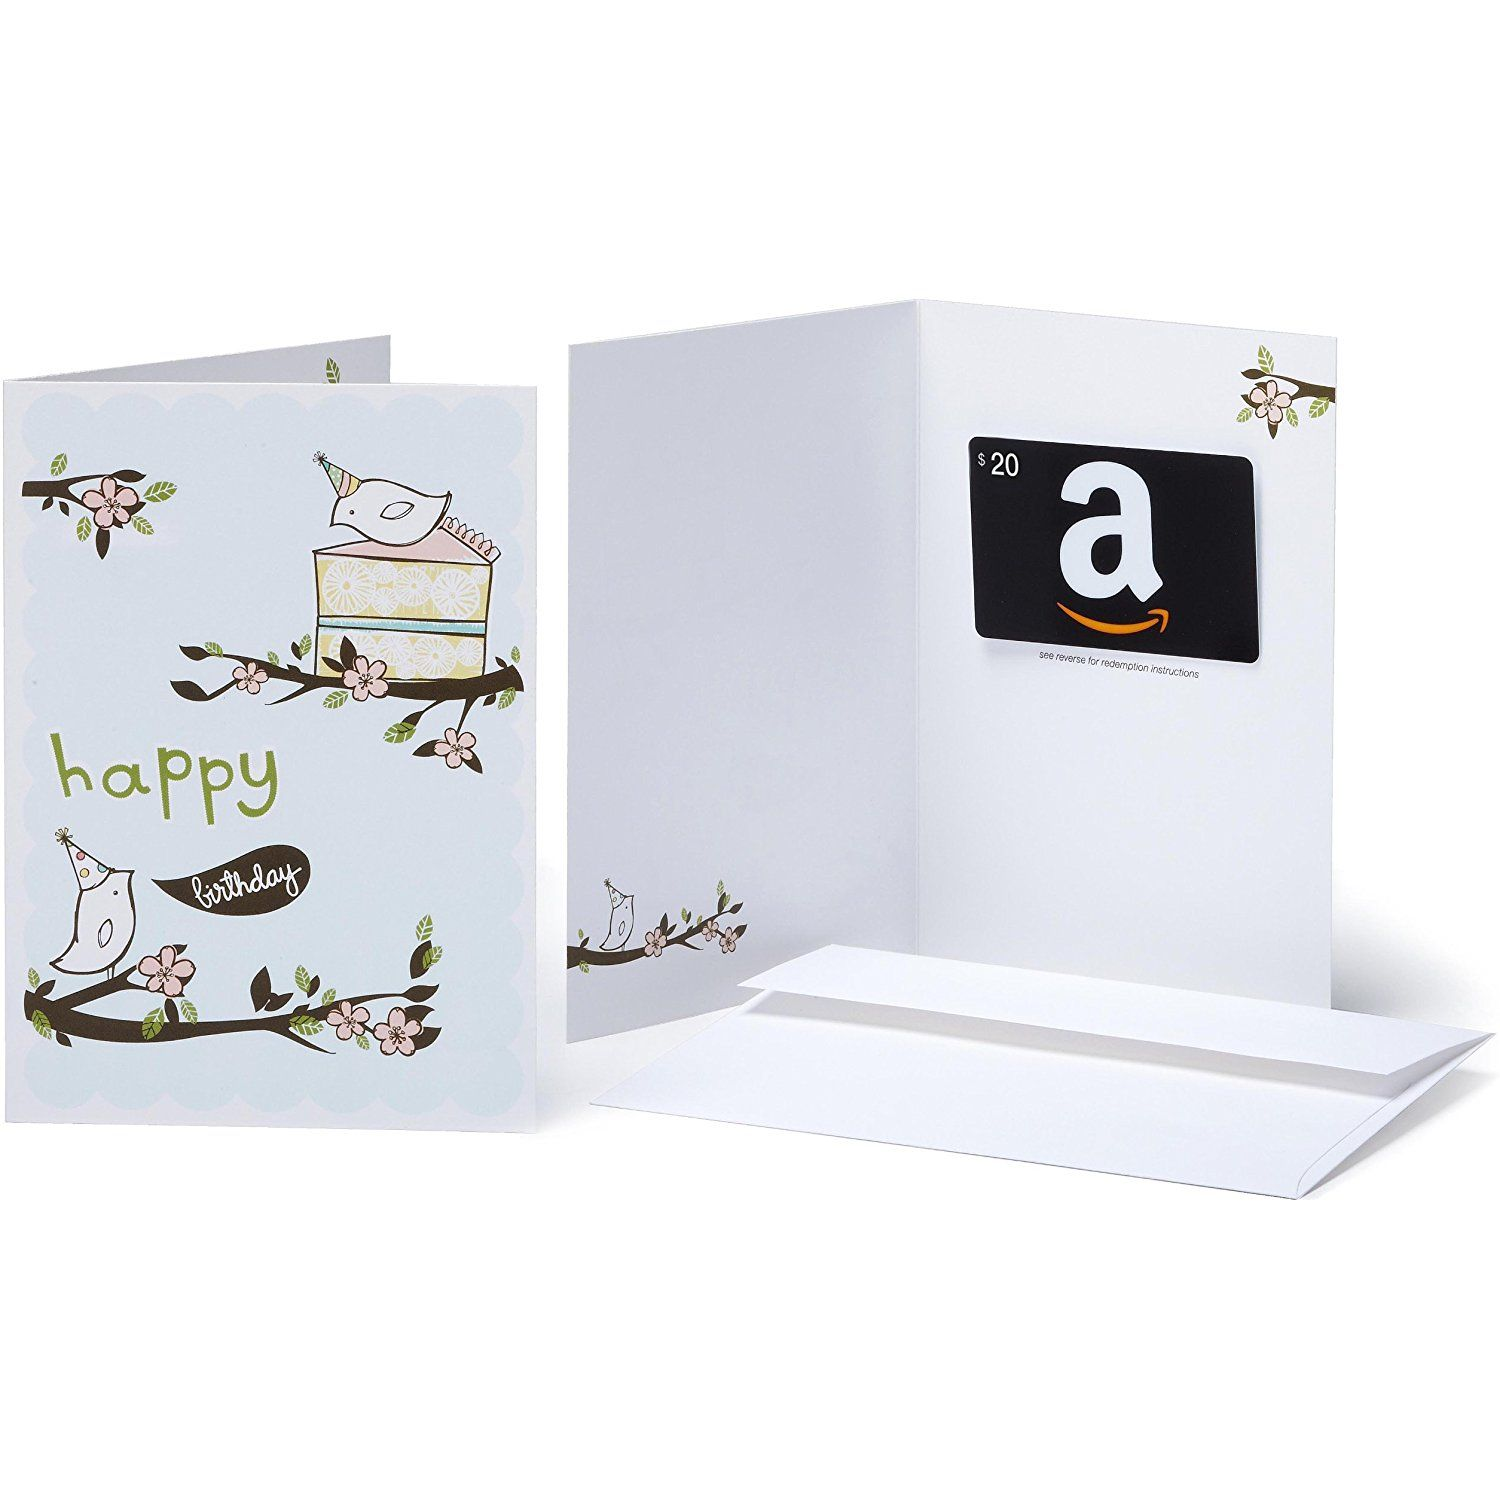 Gift card in a greeting card various designs